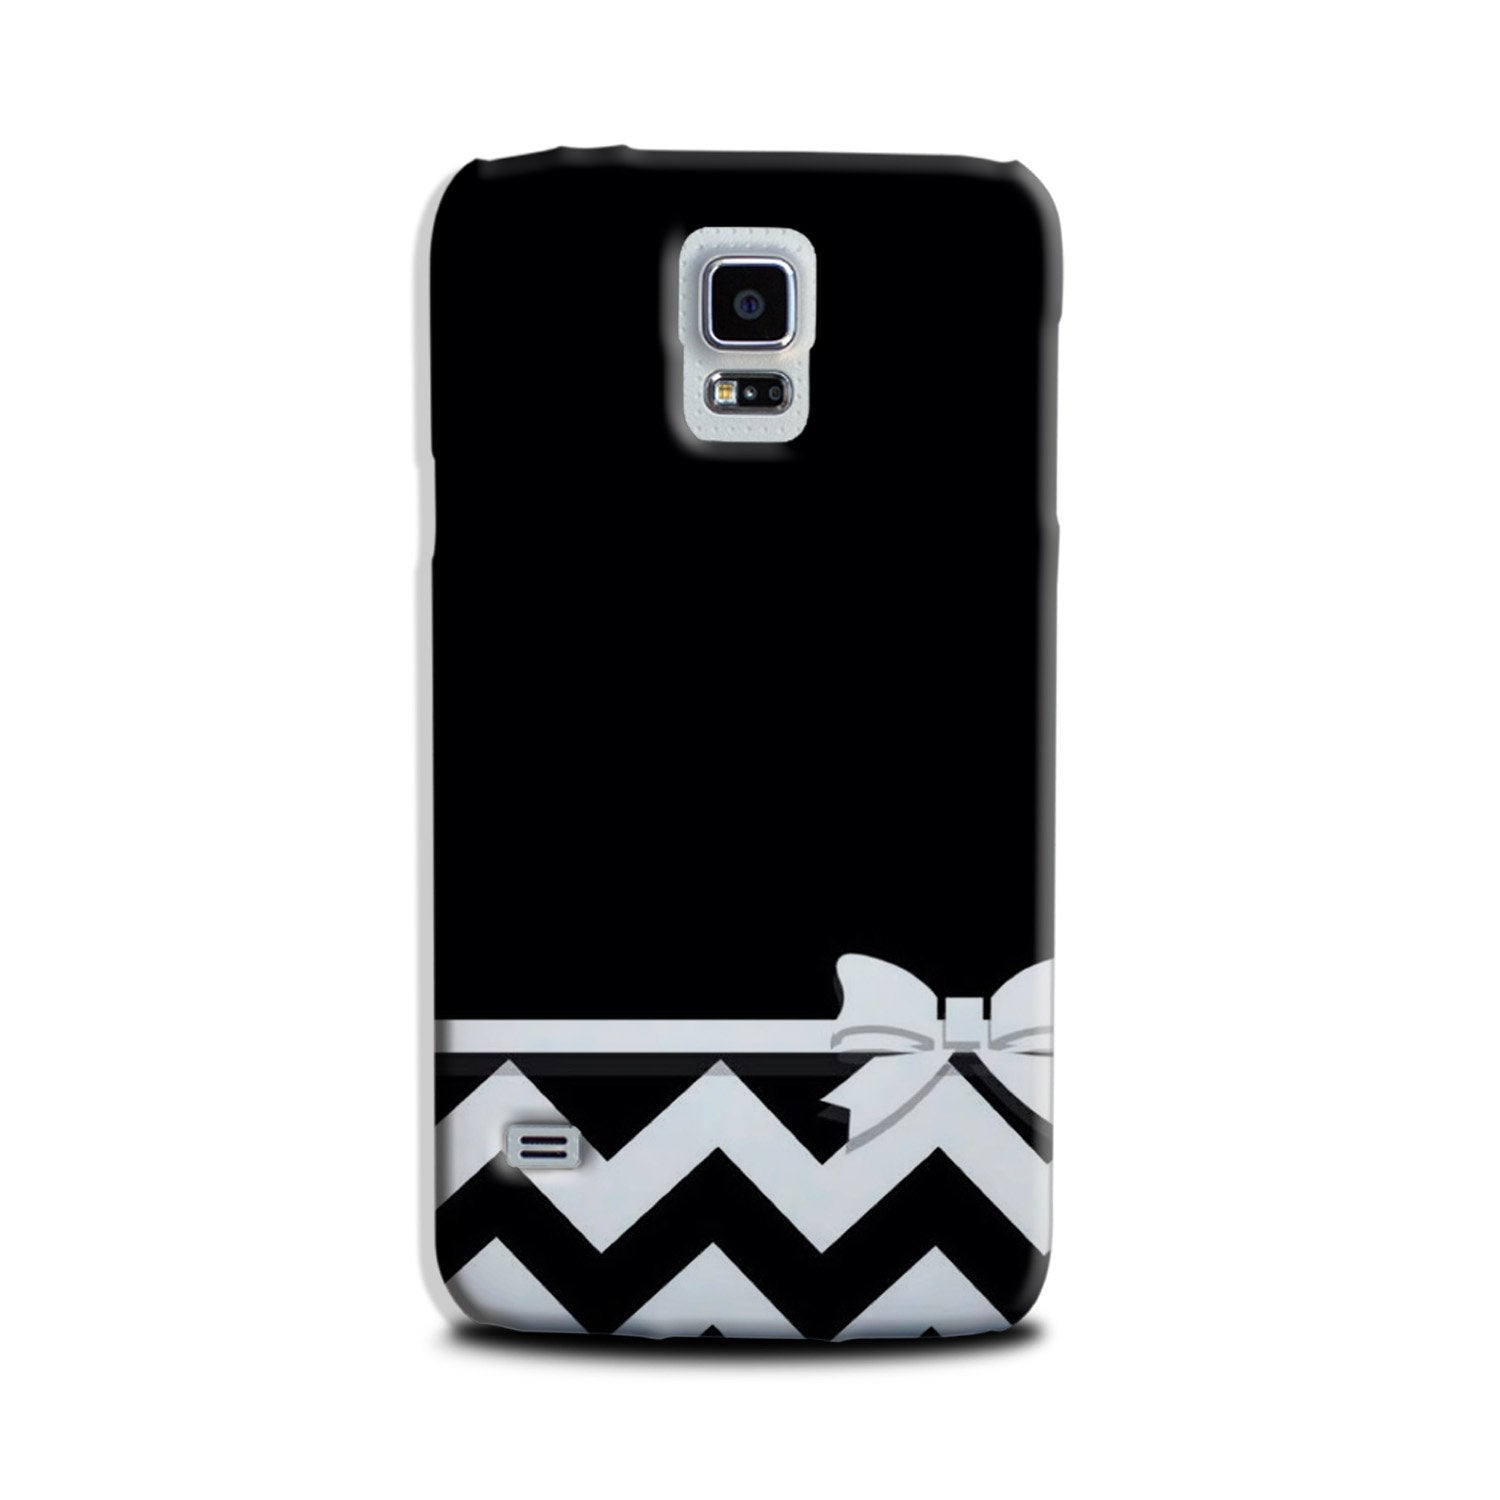 Gift Wrap7 Case for Galaxy S5